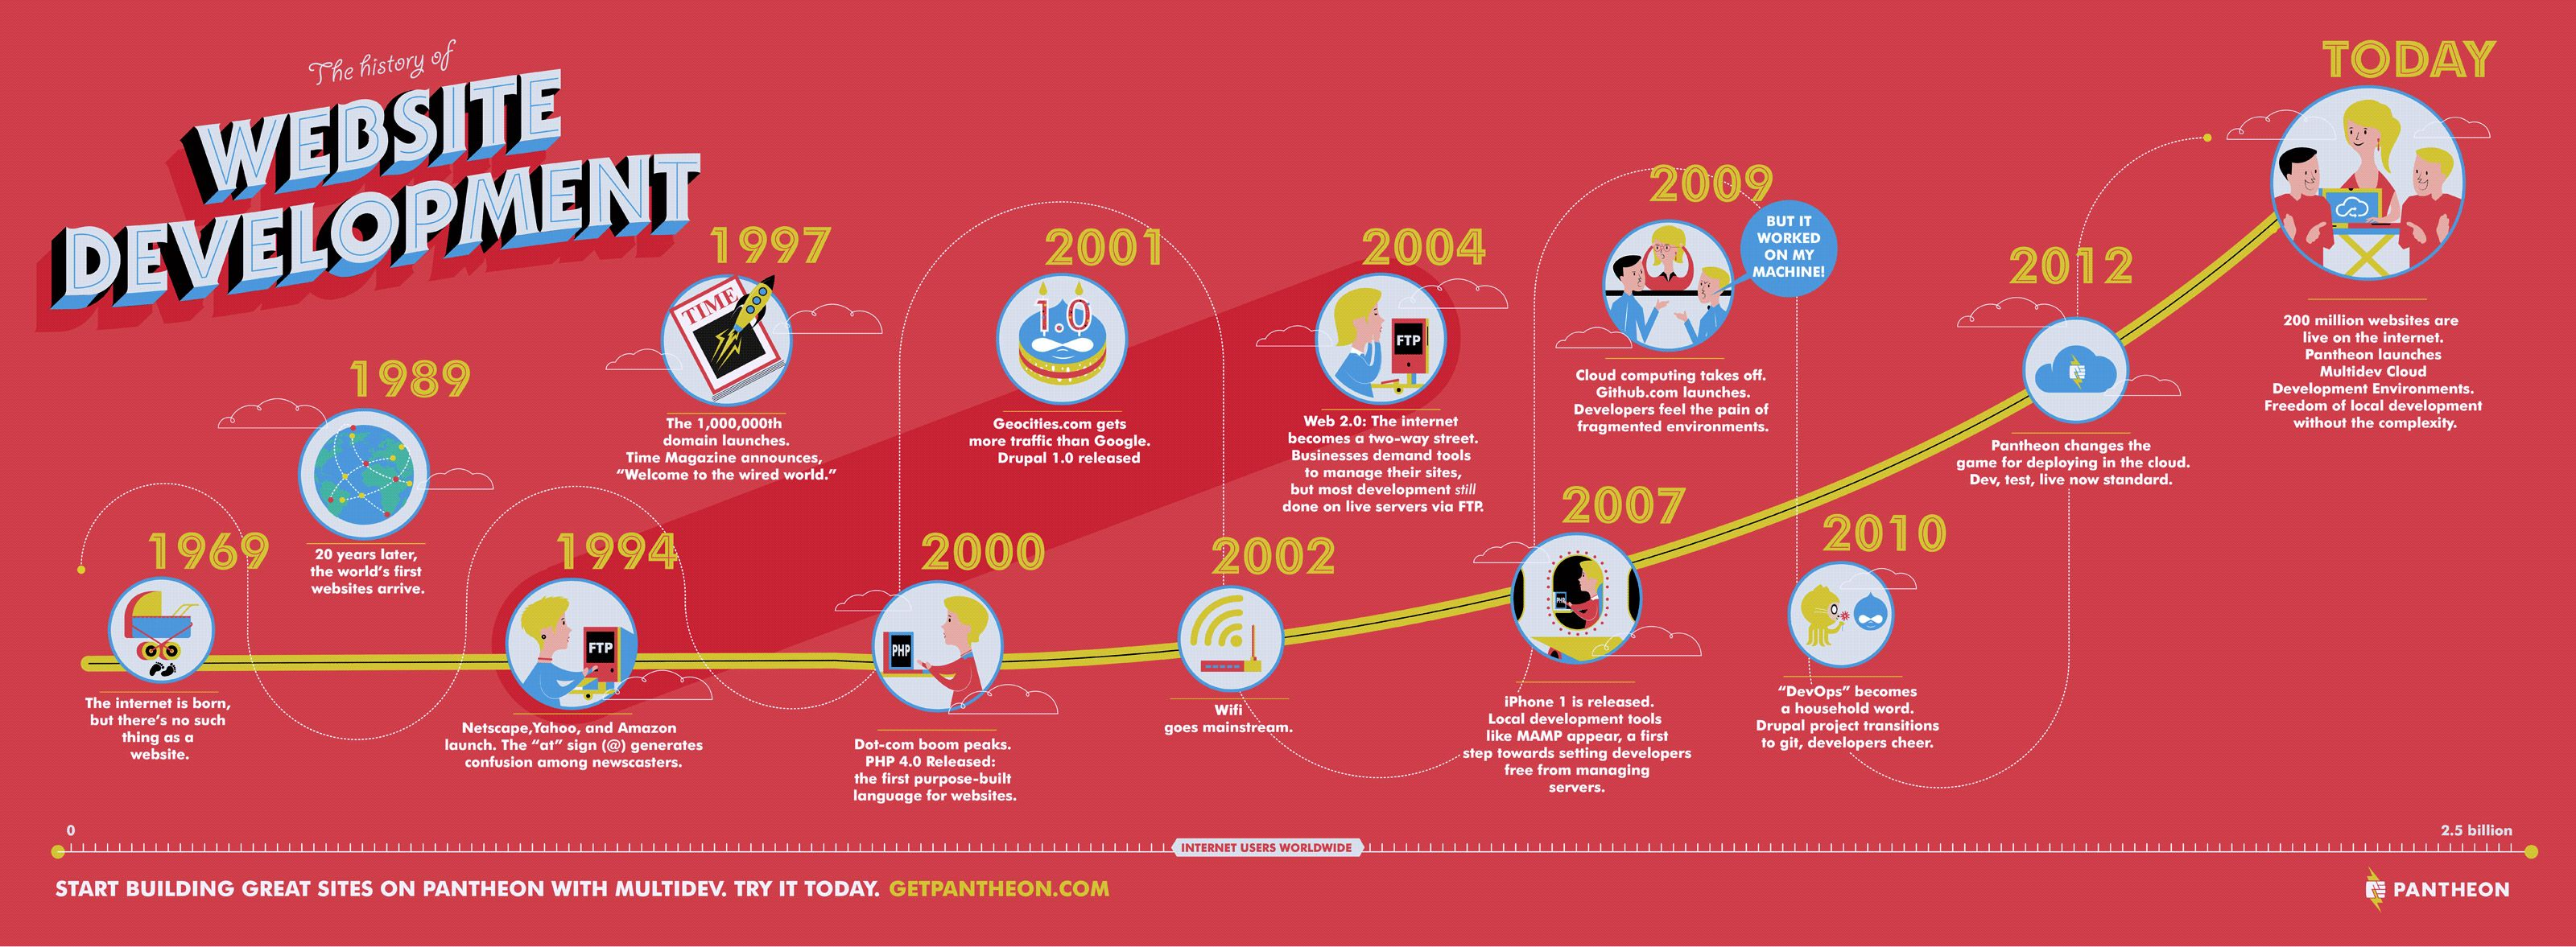 history of web site developpement